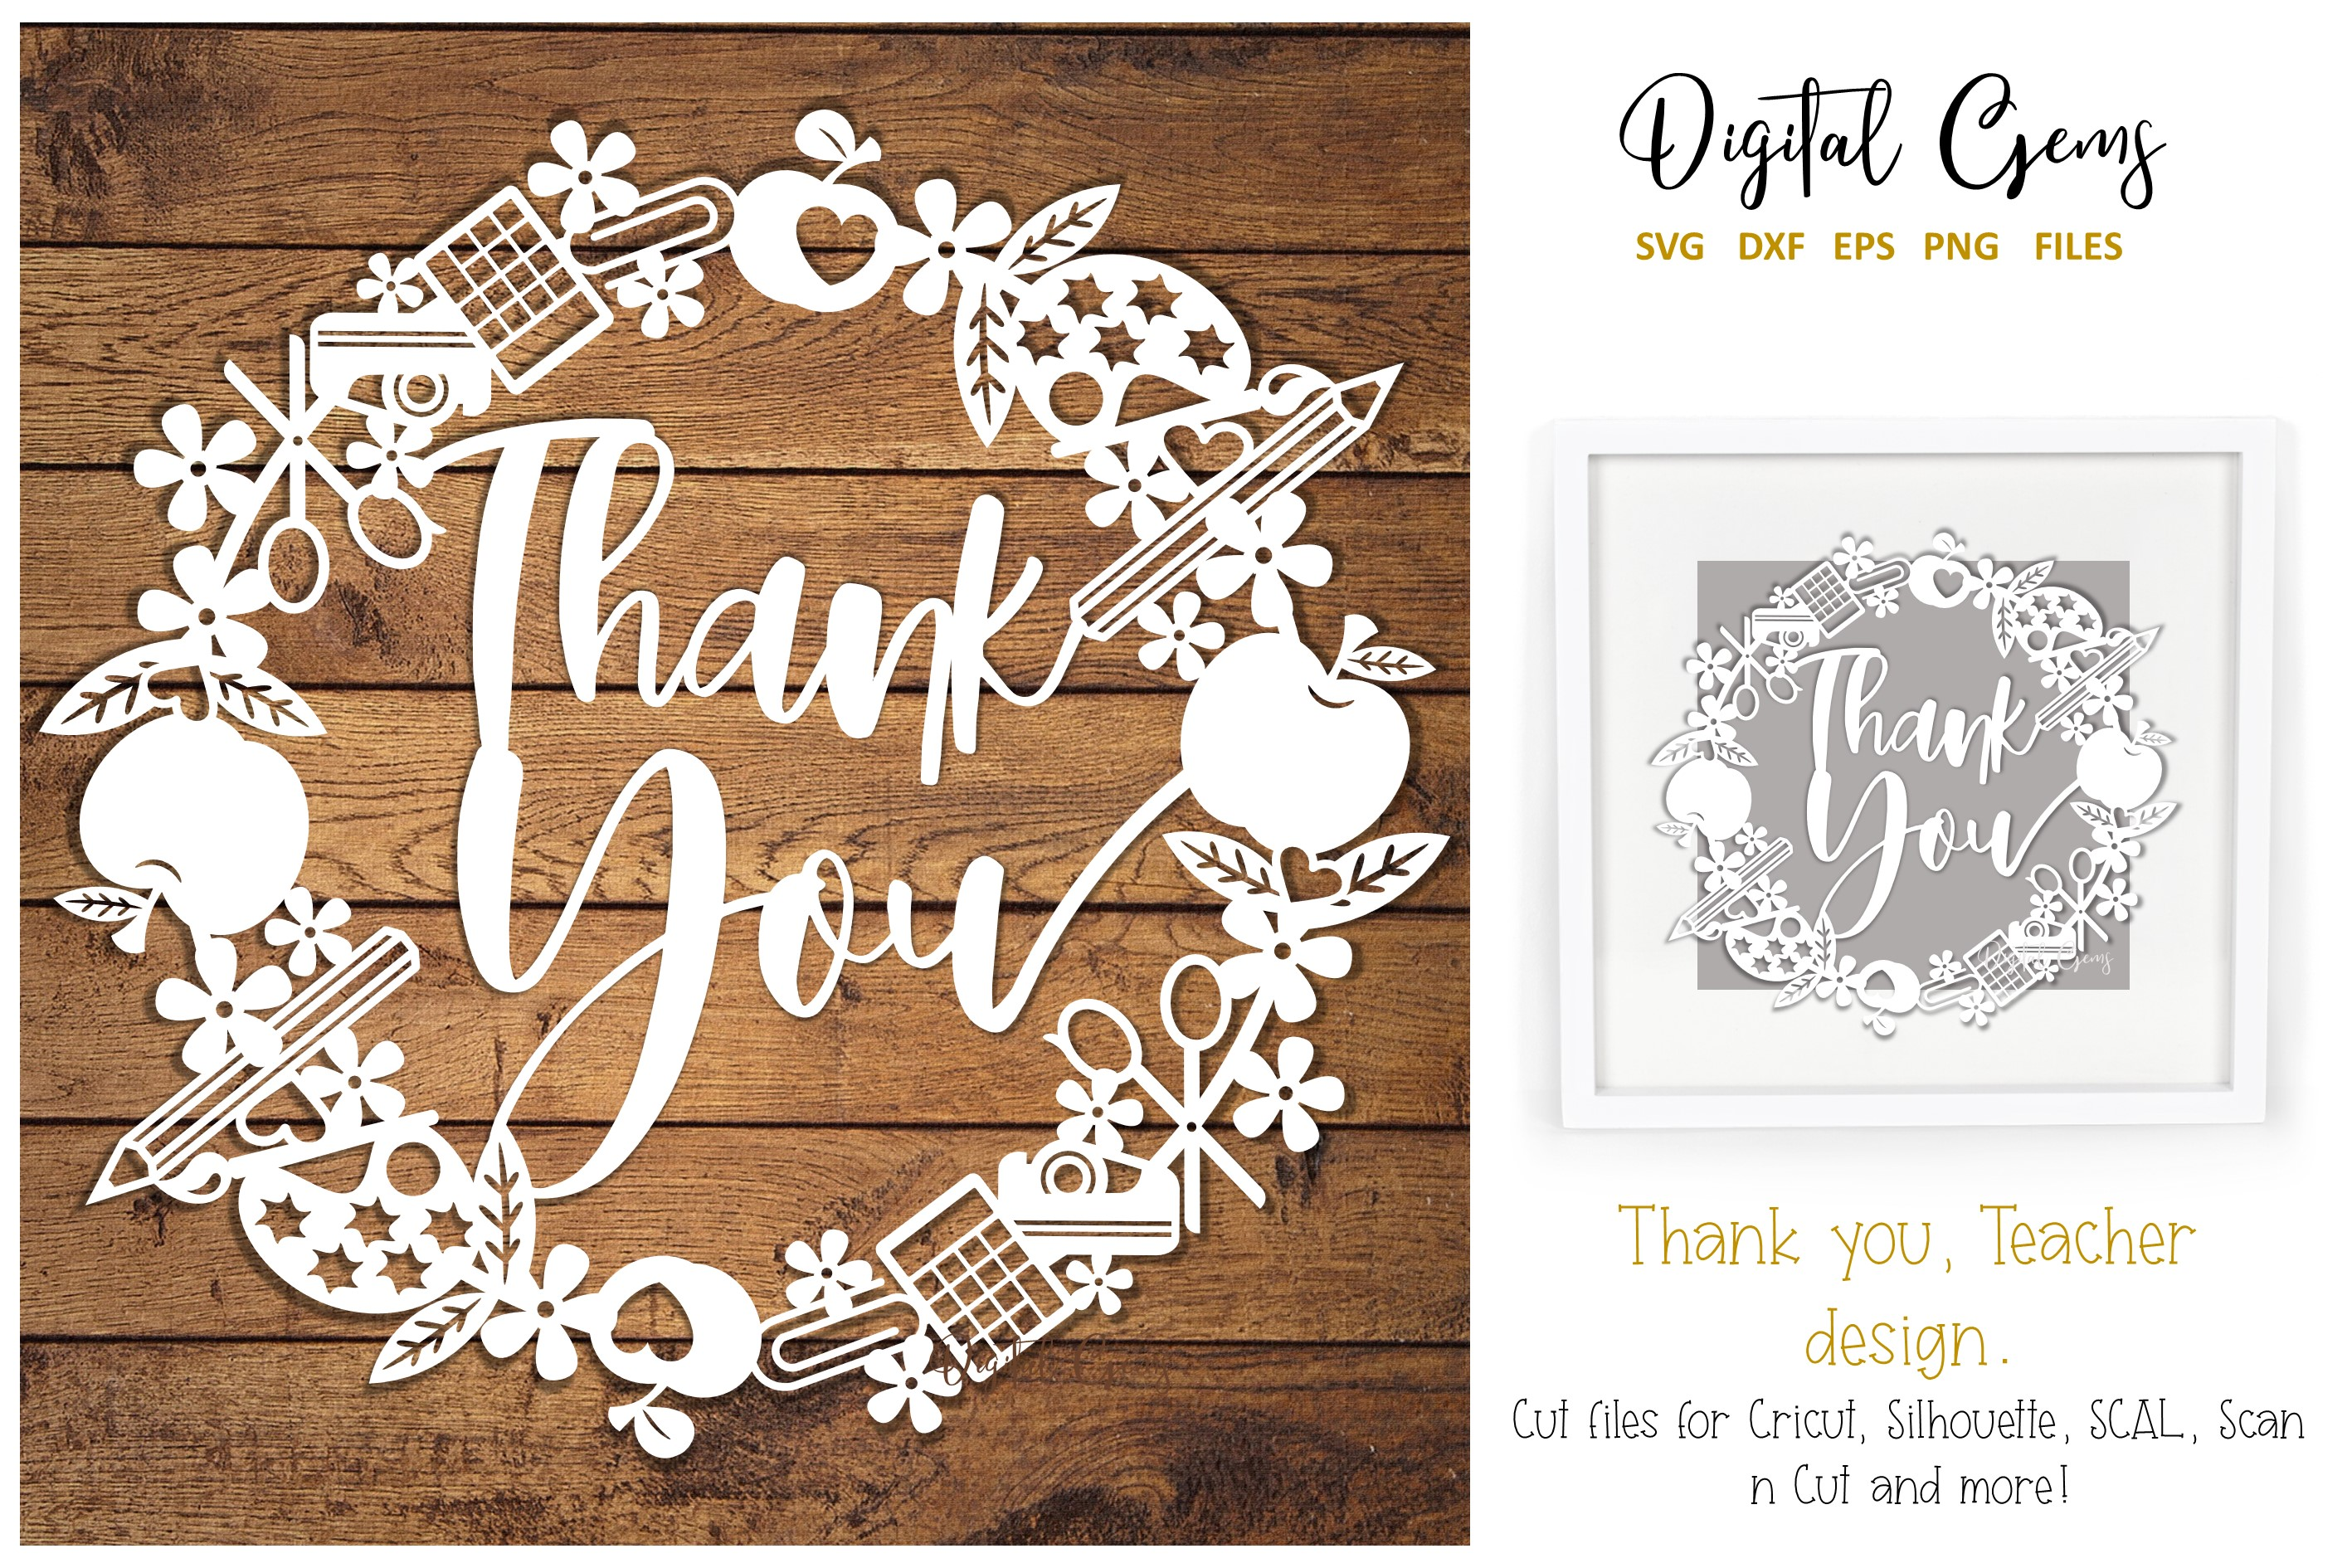 Download Free Thank You Teacher Design Graphic By Digital Gems Creative Fabrica for Cricut Explore, Silhouette and other cutting machines.